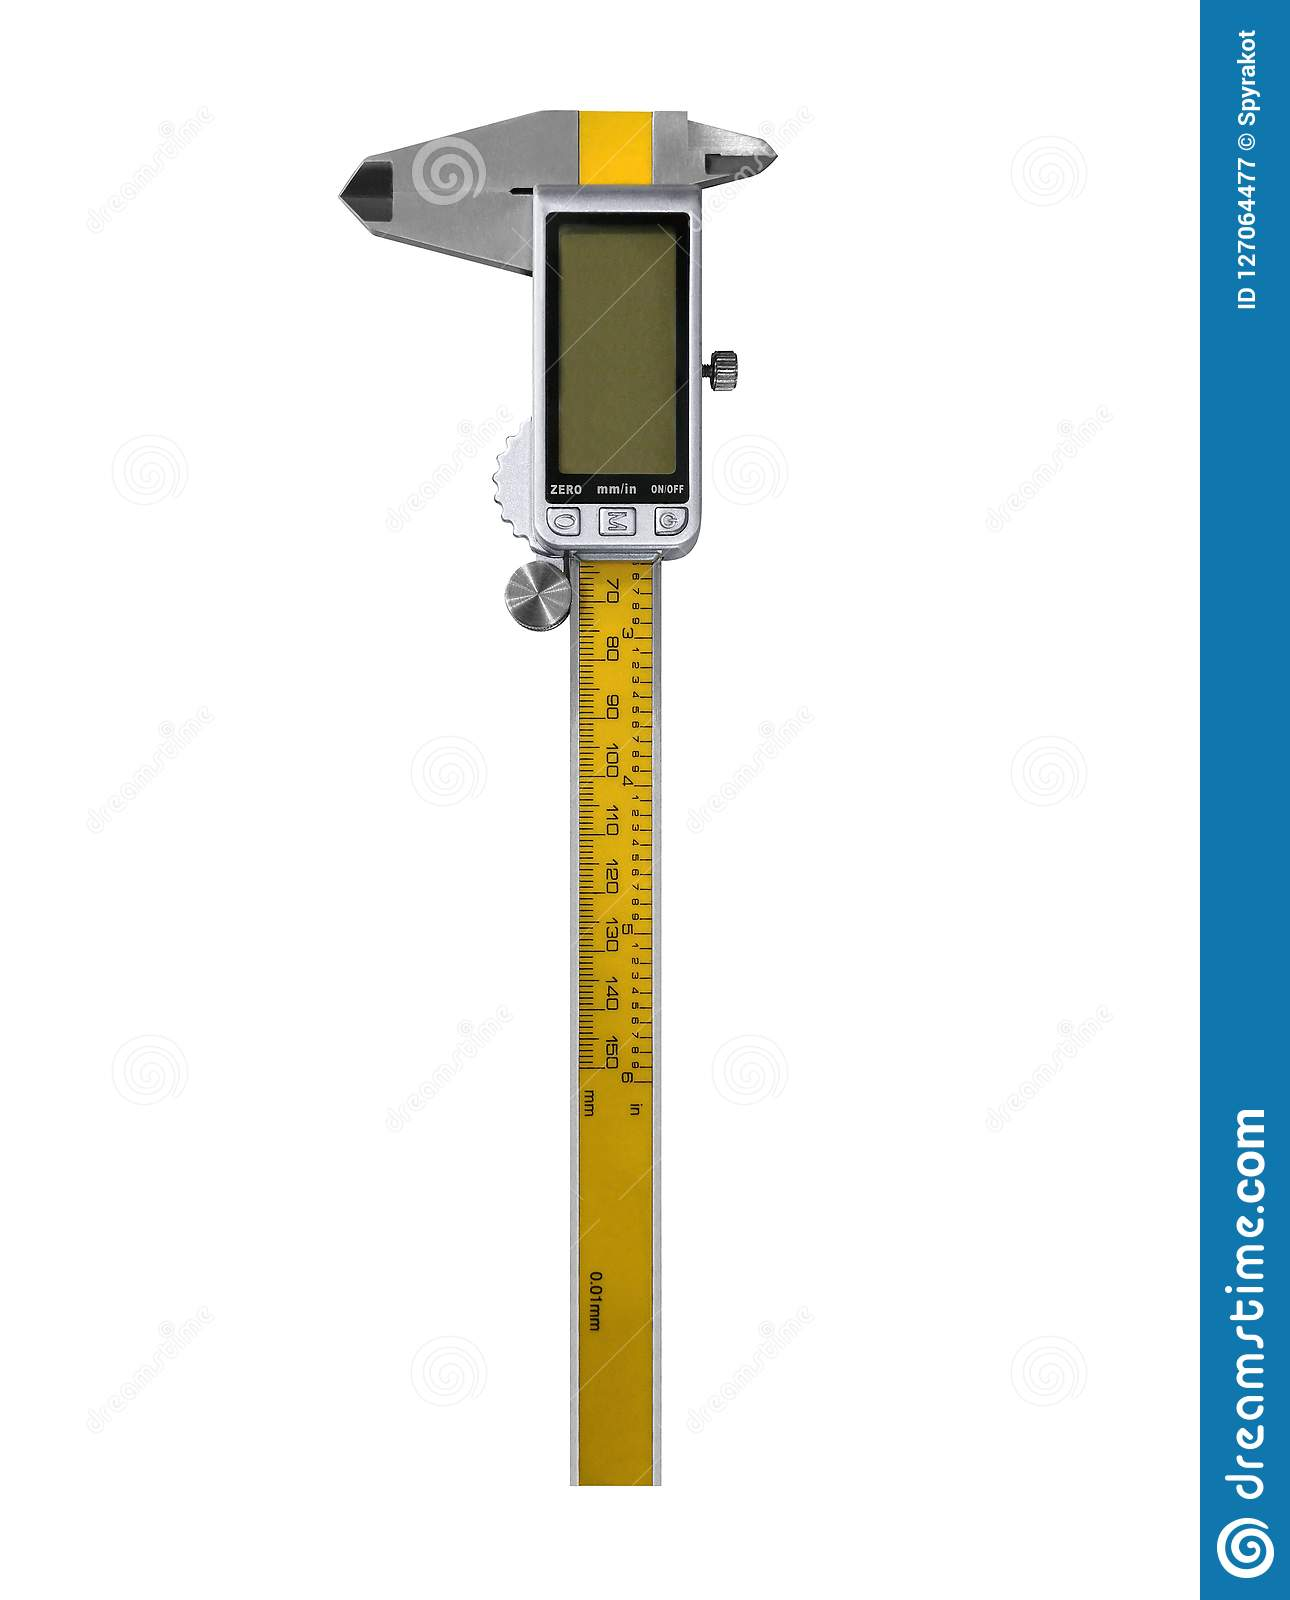 Electronic digital caliper isolated on white. Digital caliper isolated on white background. European metric system